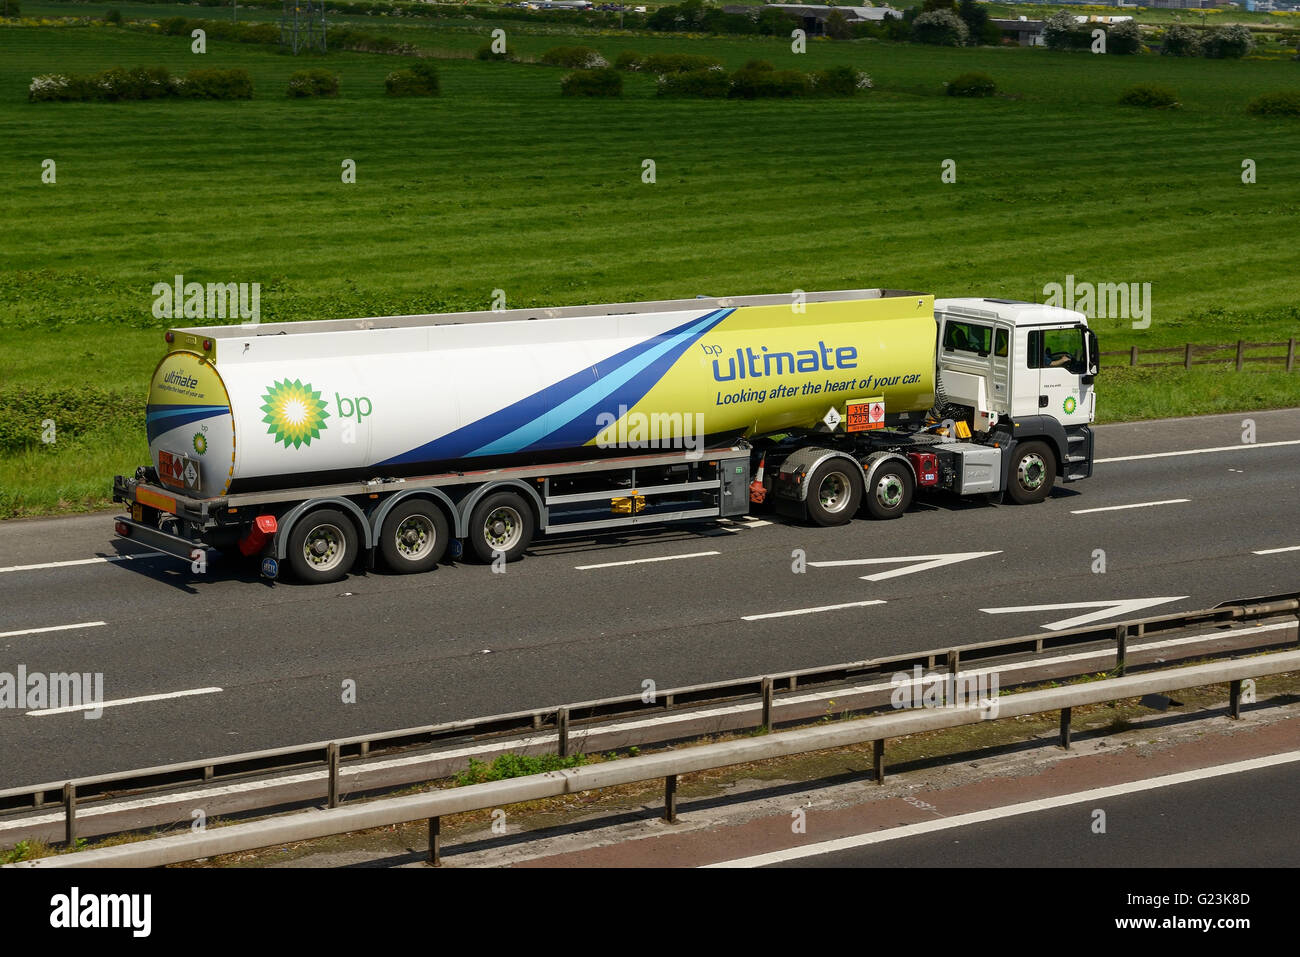 BP fuel tanker HGV travelling on the M56 motorway in Cheshire UK - Stock Image